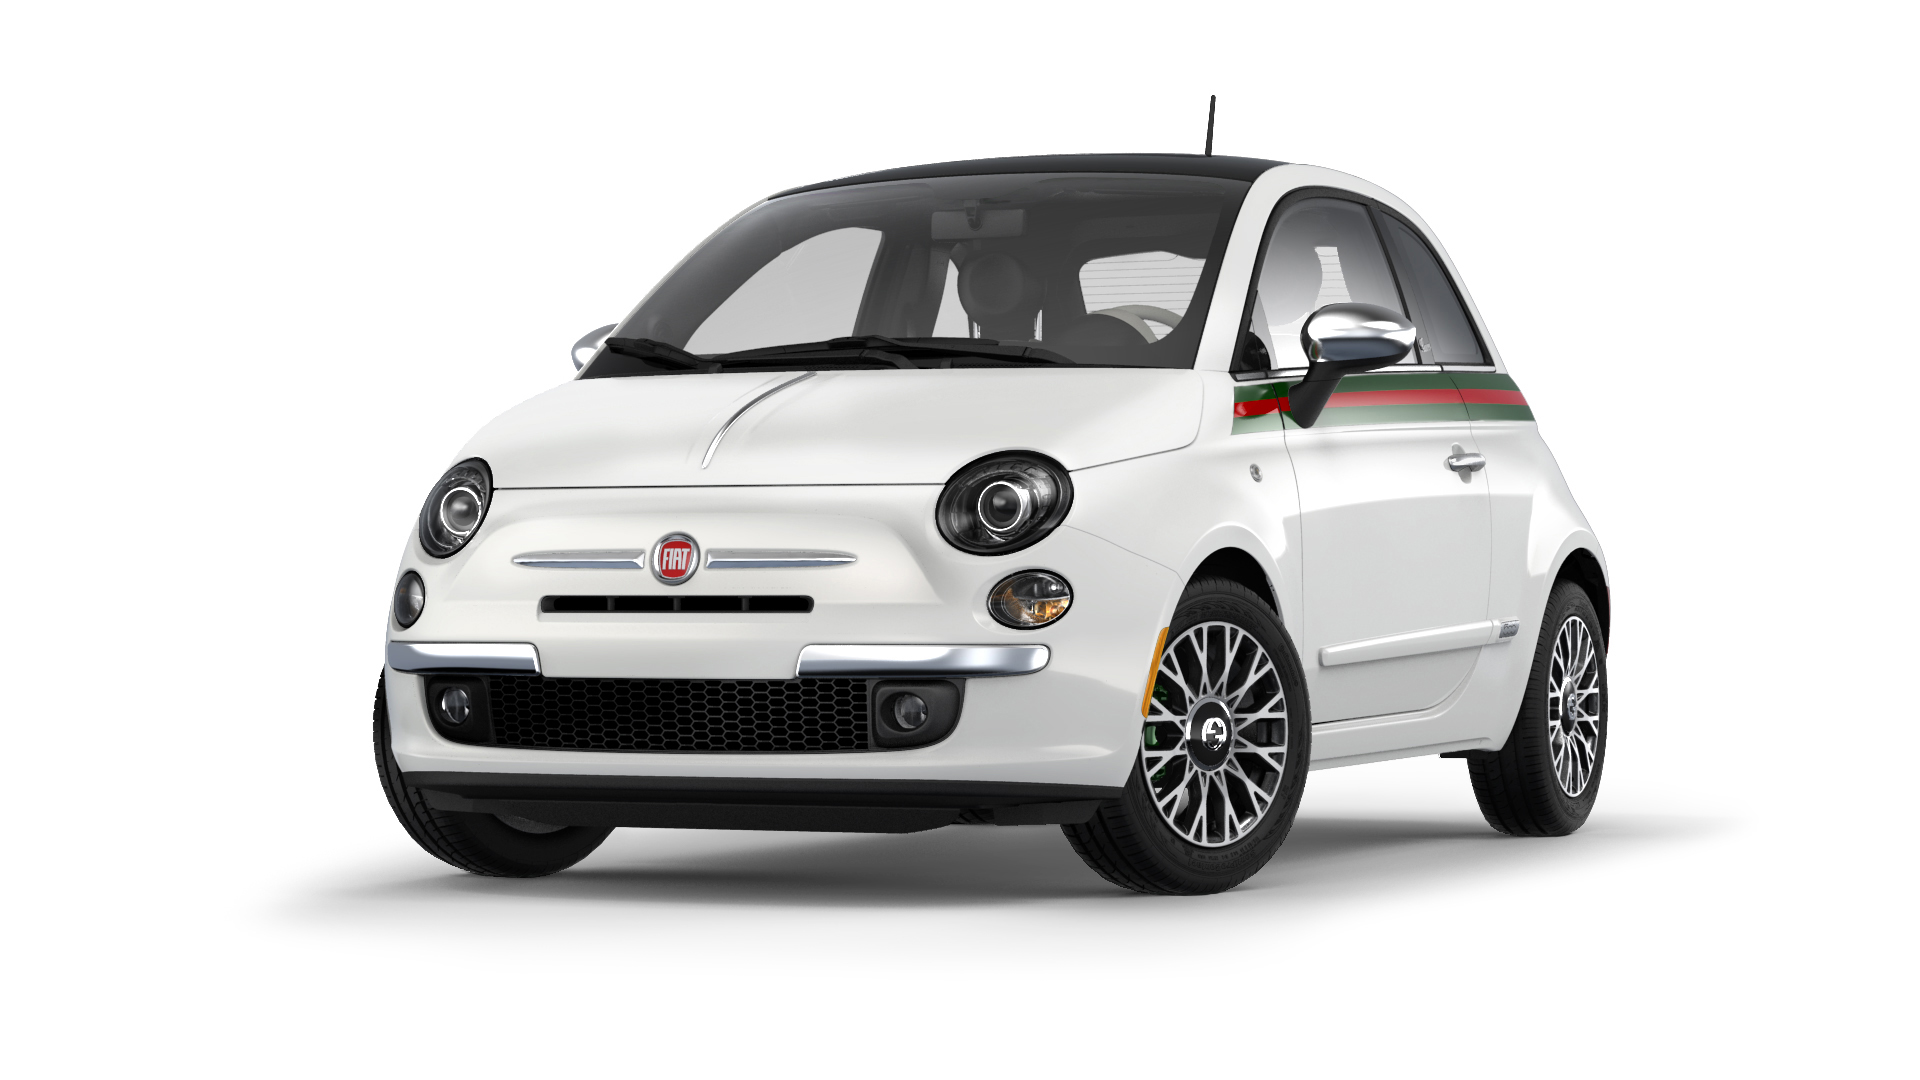 2013 fiat 500 cabrio by gucci picture 86322. Black Bedroom Furniture Sets. Home Design Ideas